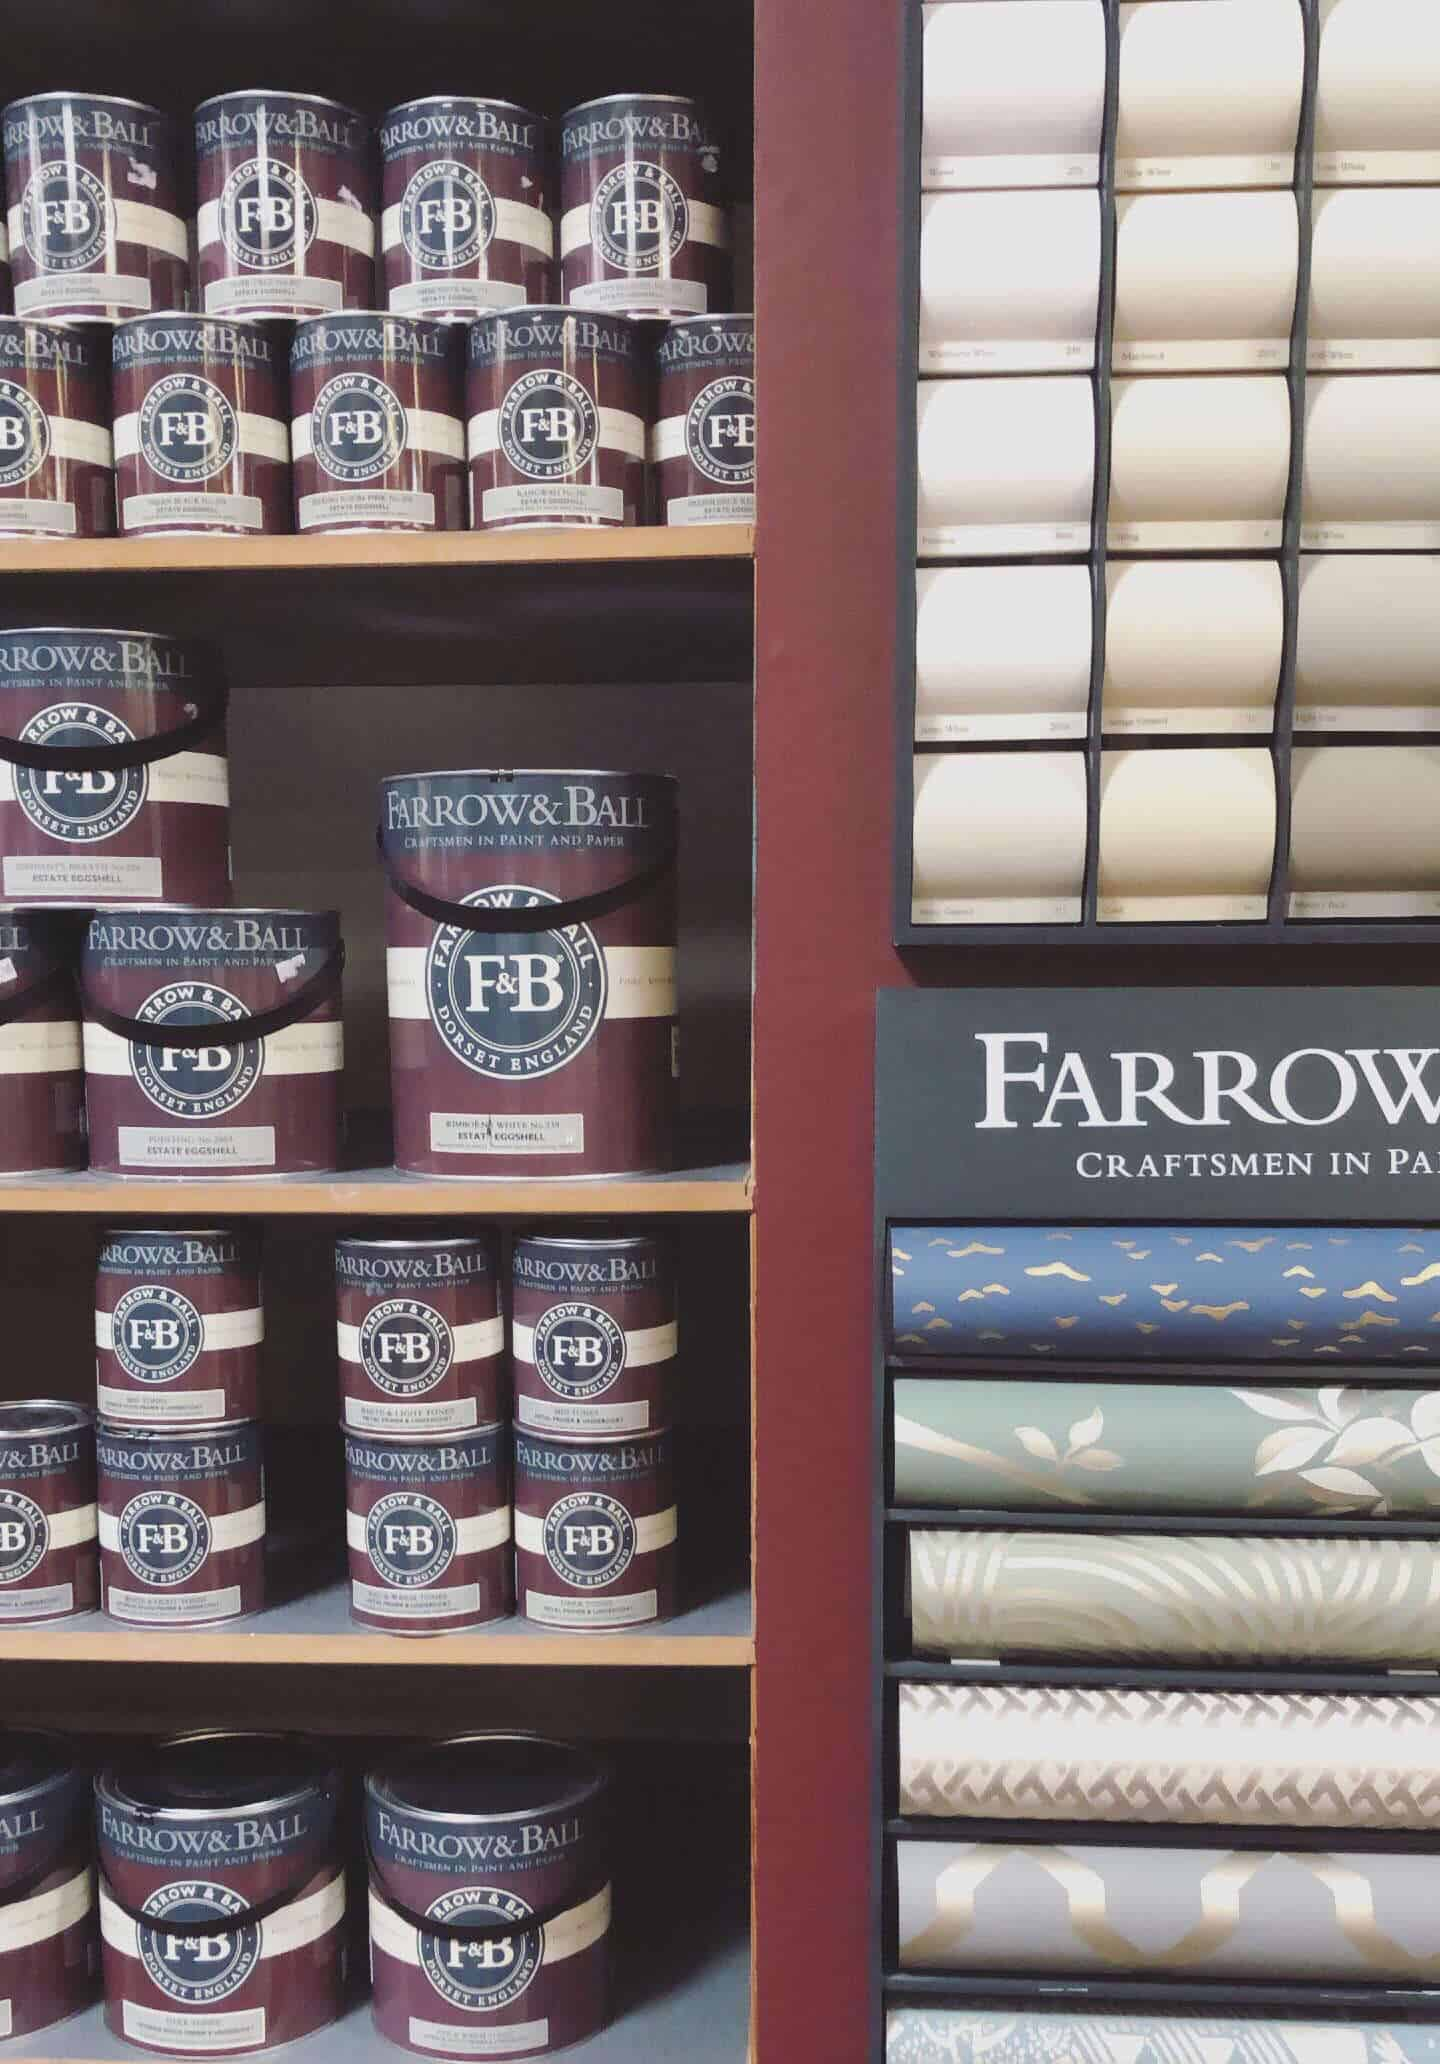 Photo des produits farrow and ball exposés dans le showroom de Reckinger au Luxembourg